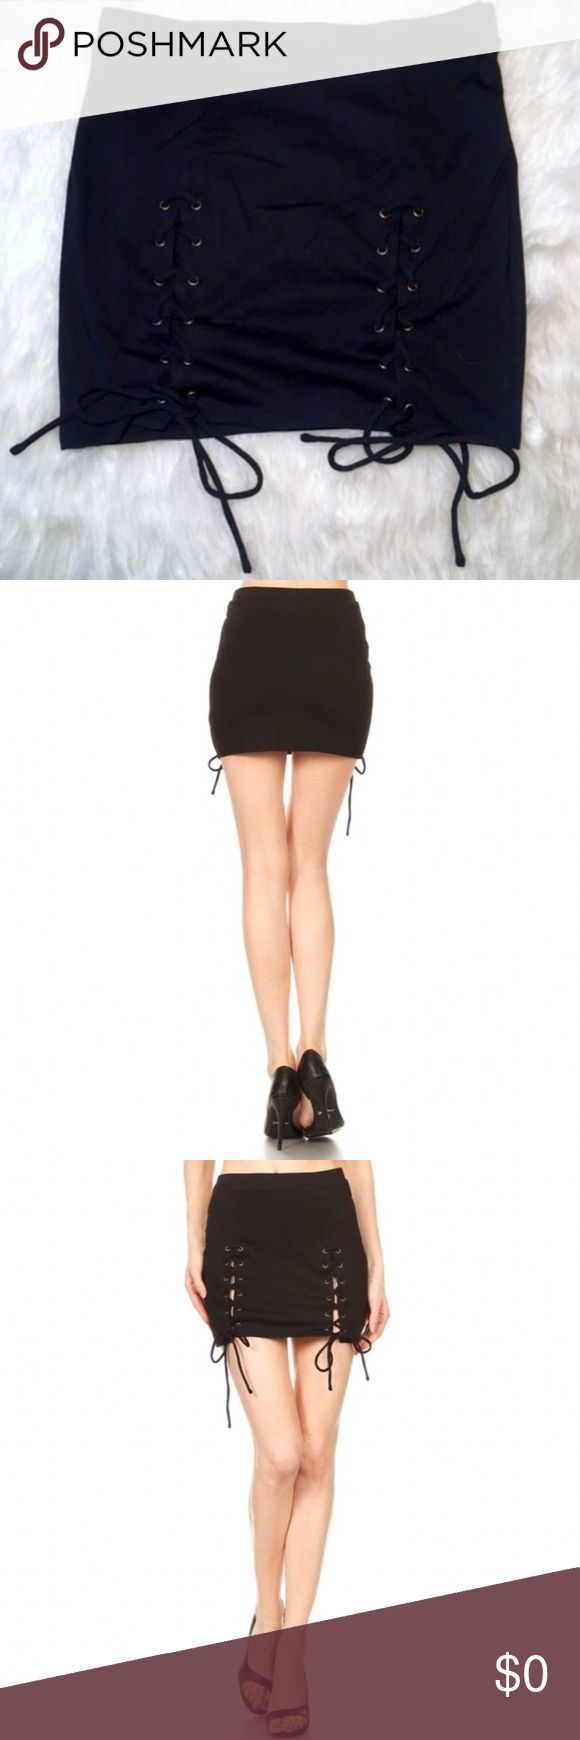 COMING SOON! Black Lace-Up Skirt Solid black skirt. Elastic high waist with lace-up string detail that ties at the bottom. Body-con/fitted style.  65% Rayon 35% Polyester Sugar Punch Couture Skirts Mini